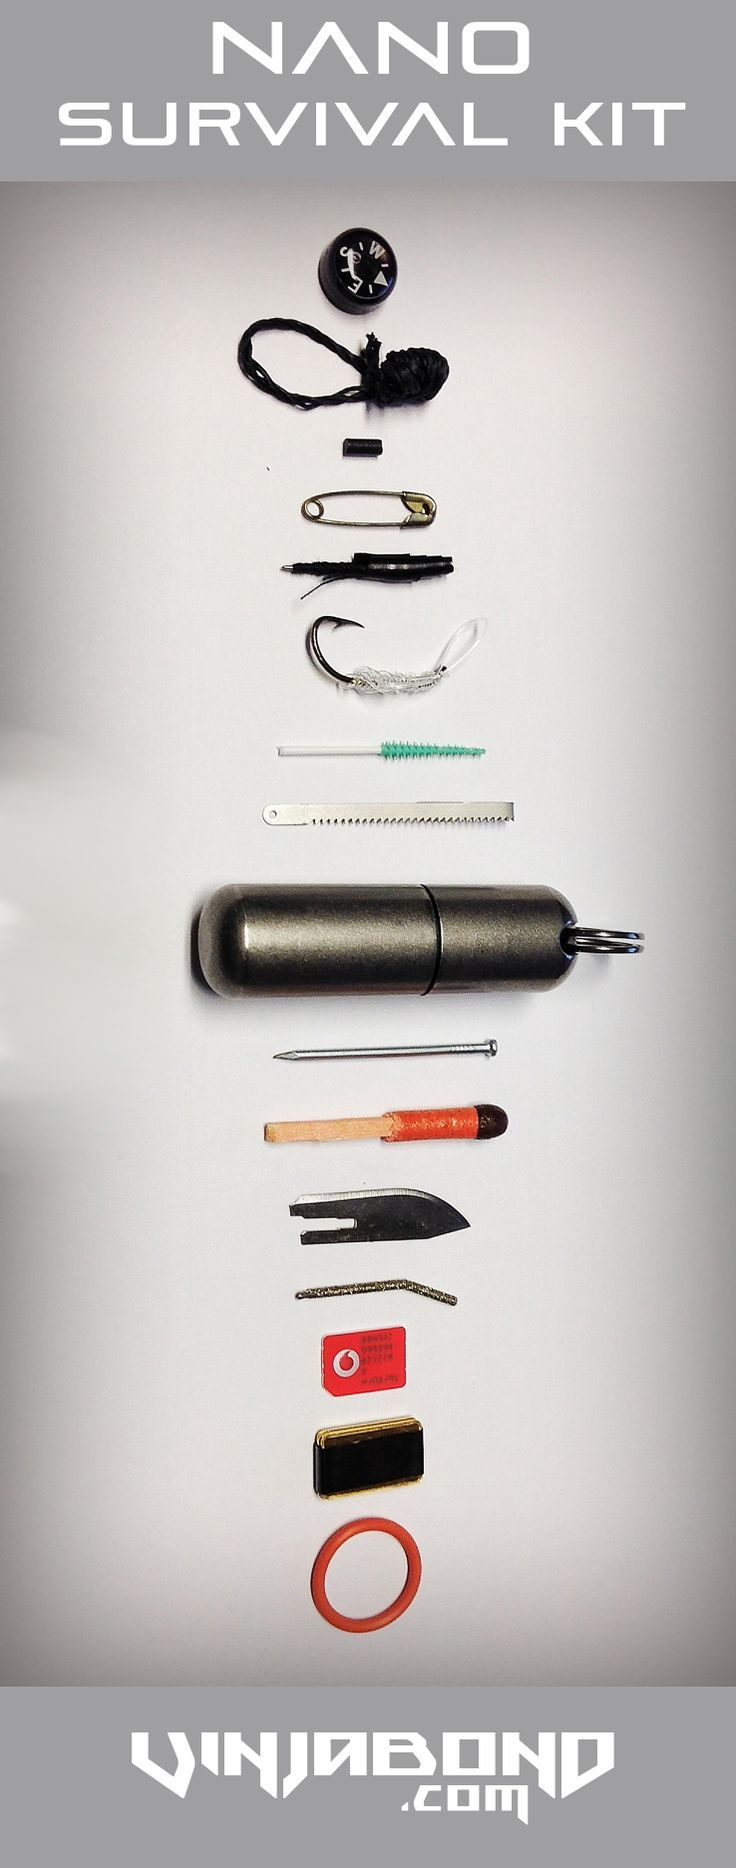 Ultra minimal nano survival kit: